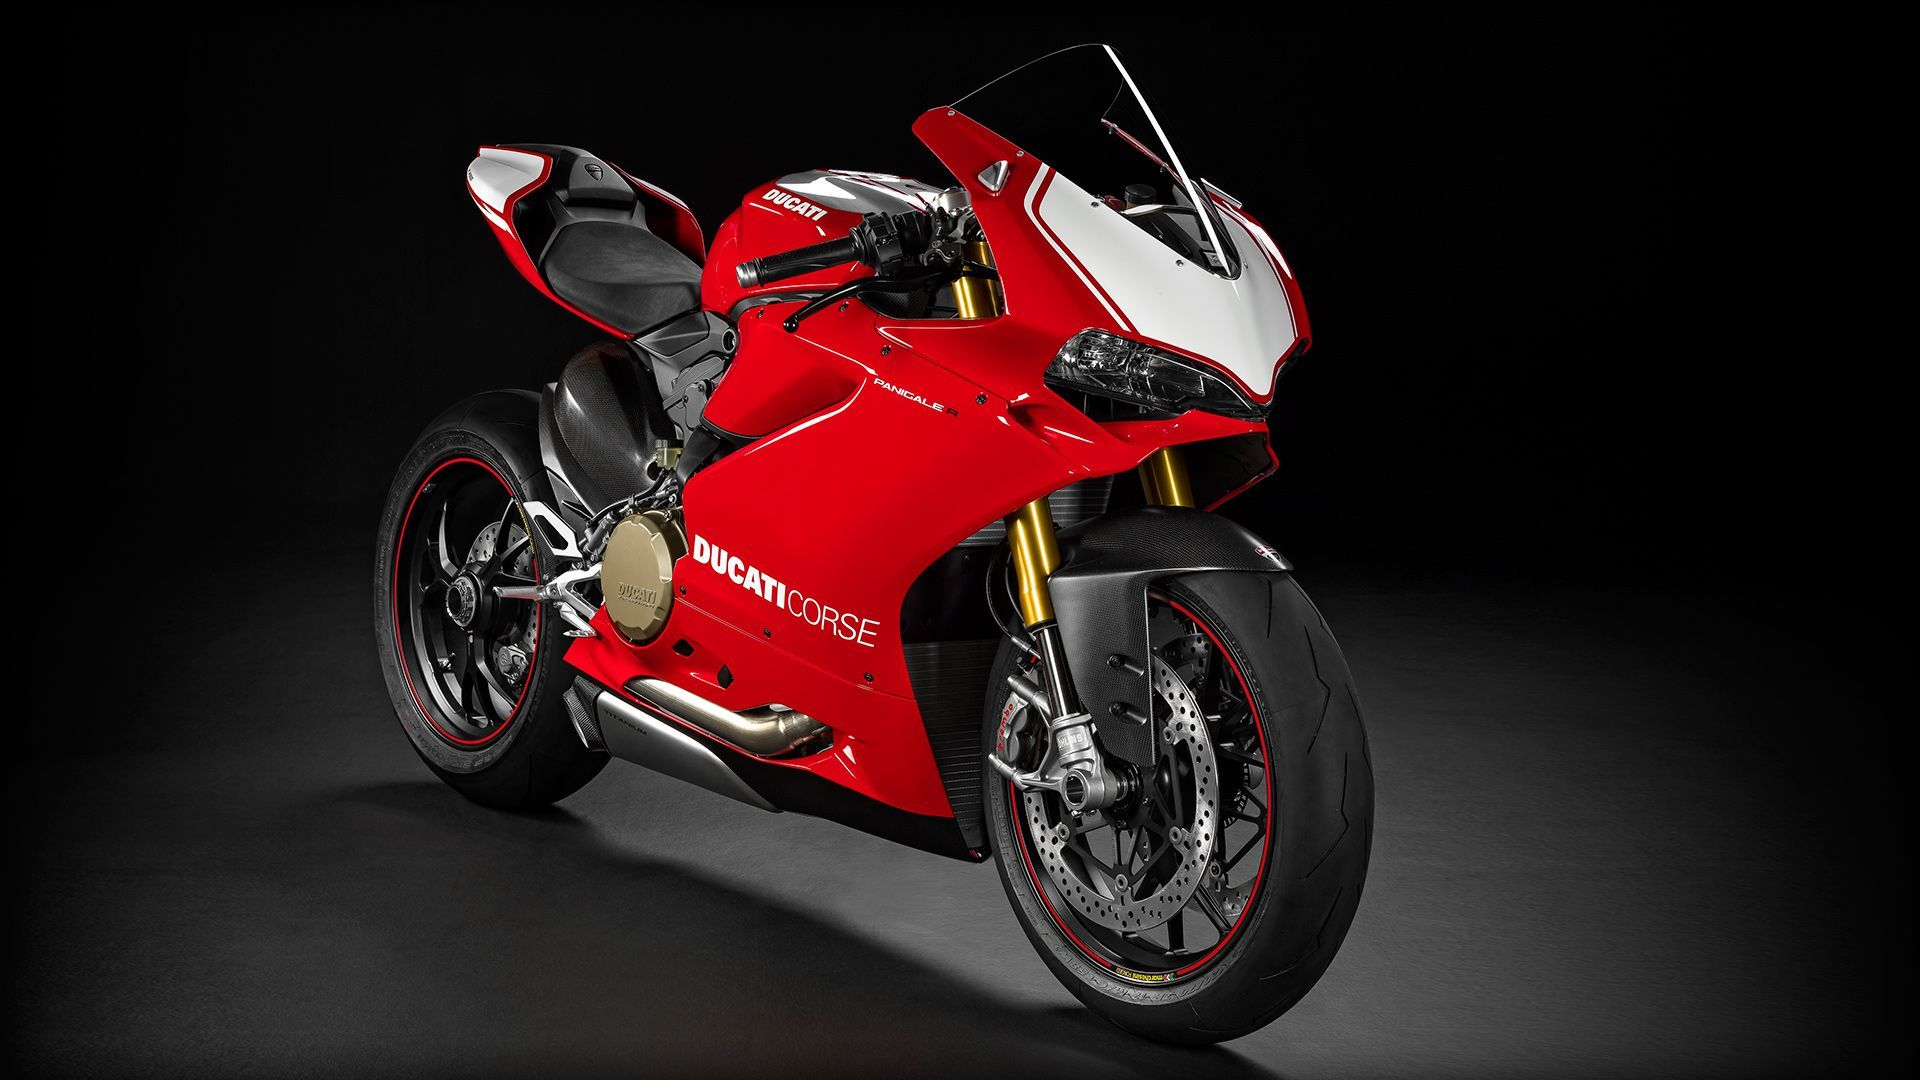 2015 Ducati Panigale R | Panigale R - Front Angled Shot